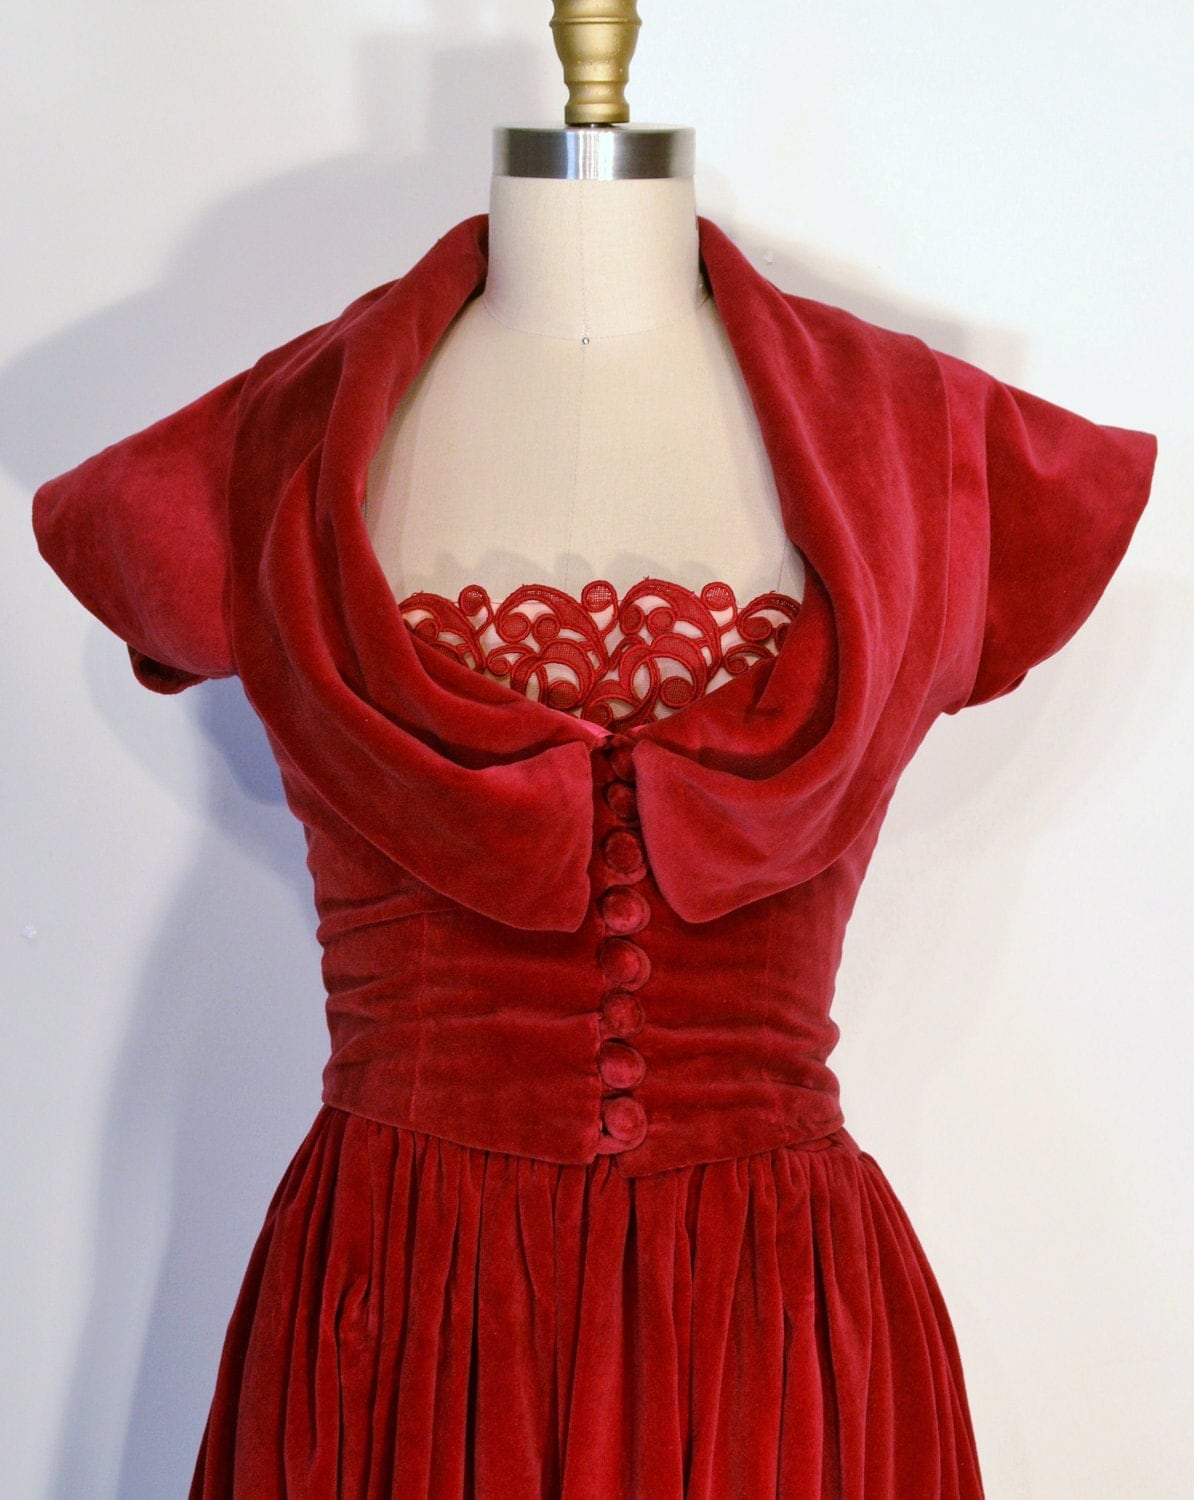 40 Prom Makeup Ideas To Have All Eyes On You: Vintage 1940s Dress 40s Evening Gown Cranberry Red